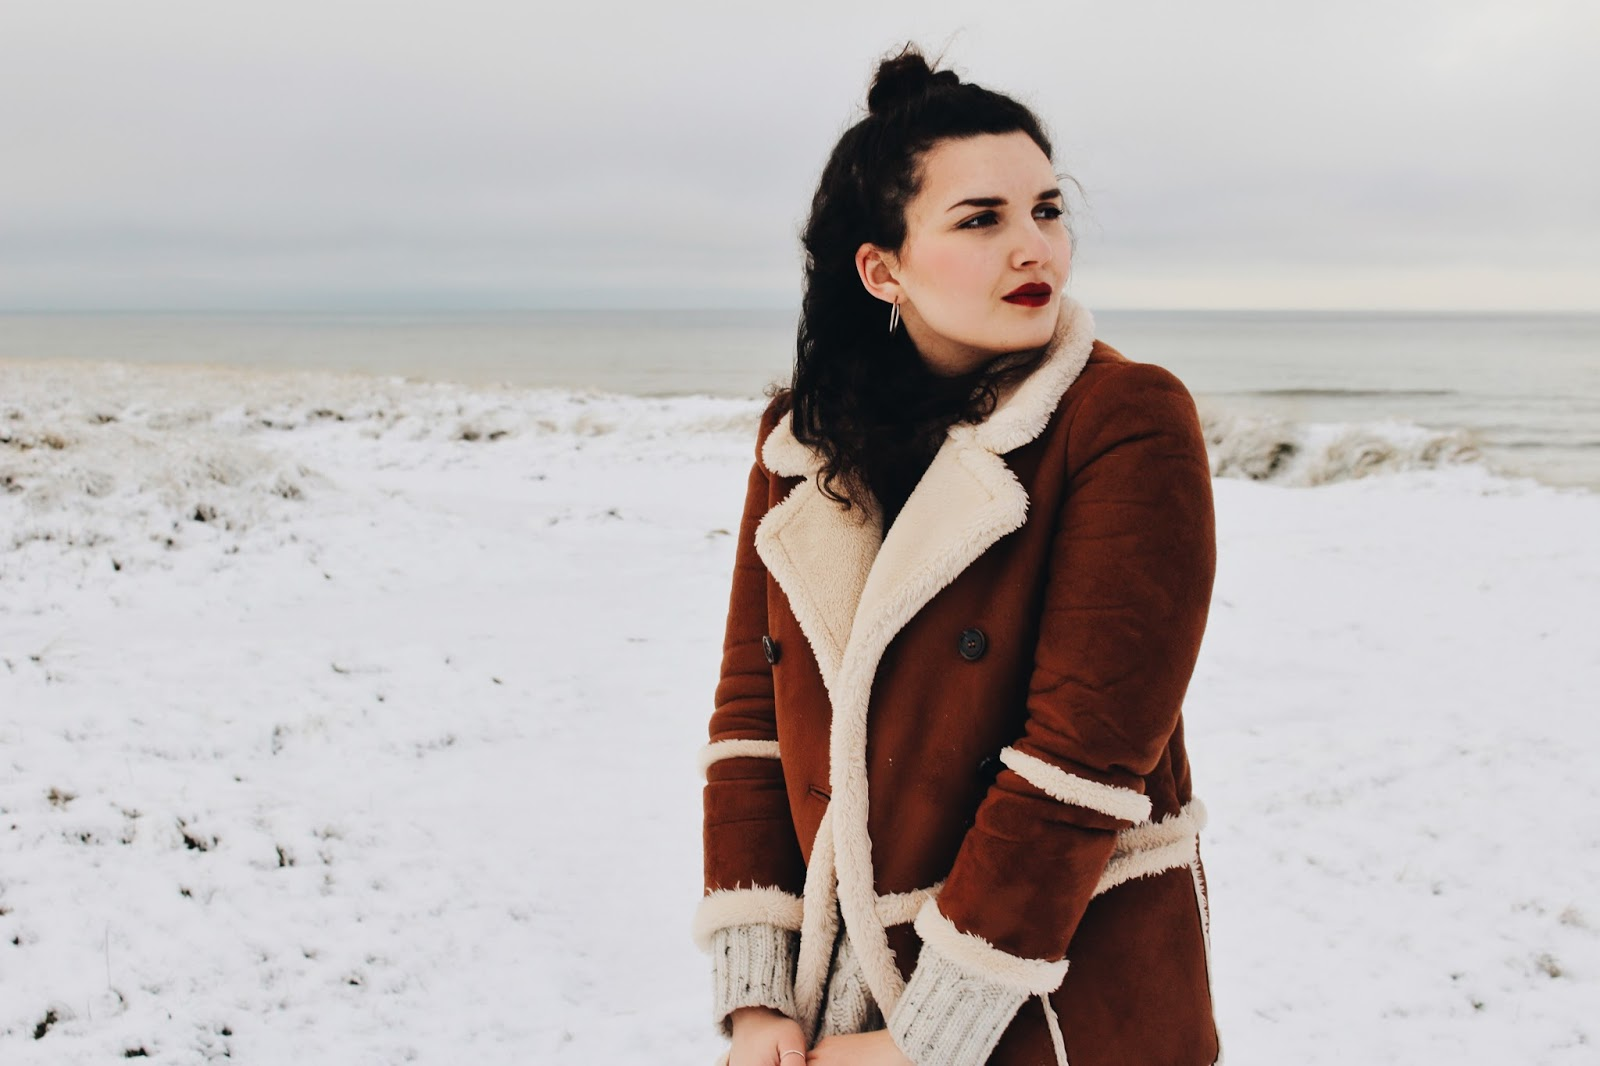 how to live your best life, danish girl, danish blogger, danish fashion blogger, snow, winter, winter outfit, snow outfit, shearling coat, shearling jacket, topshop, archive by alexa, sweater, cream knit, fisherman sweater, cable knit, love yourself, know your identity, fashion blog, advice, treat yourself, buy shoes, dare to dream, em's wardrobe, outfit of the day, style blogger, minimal blogger, scandinavian blogger, zara dress, yves saint laurent inspired